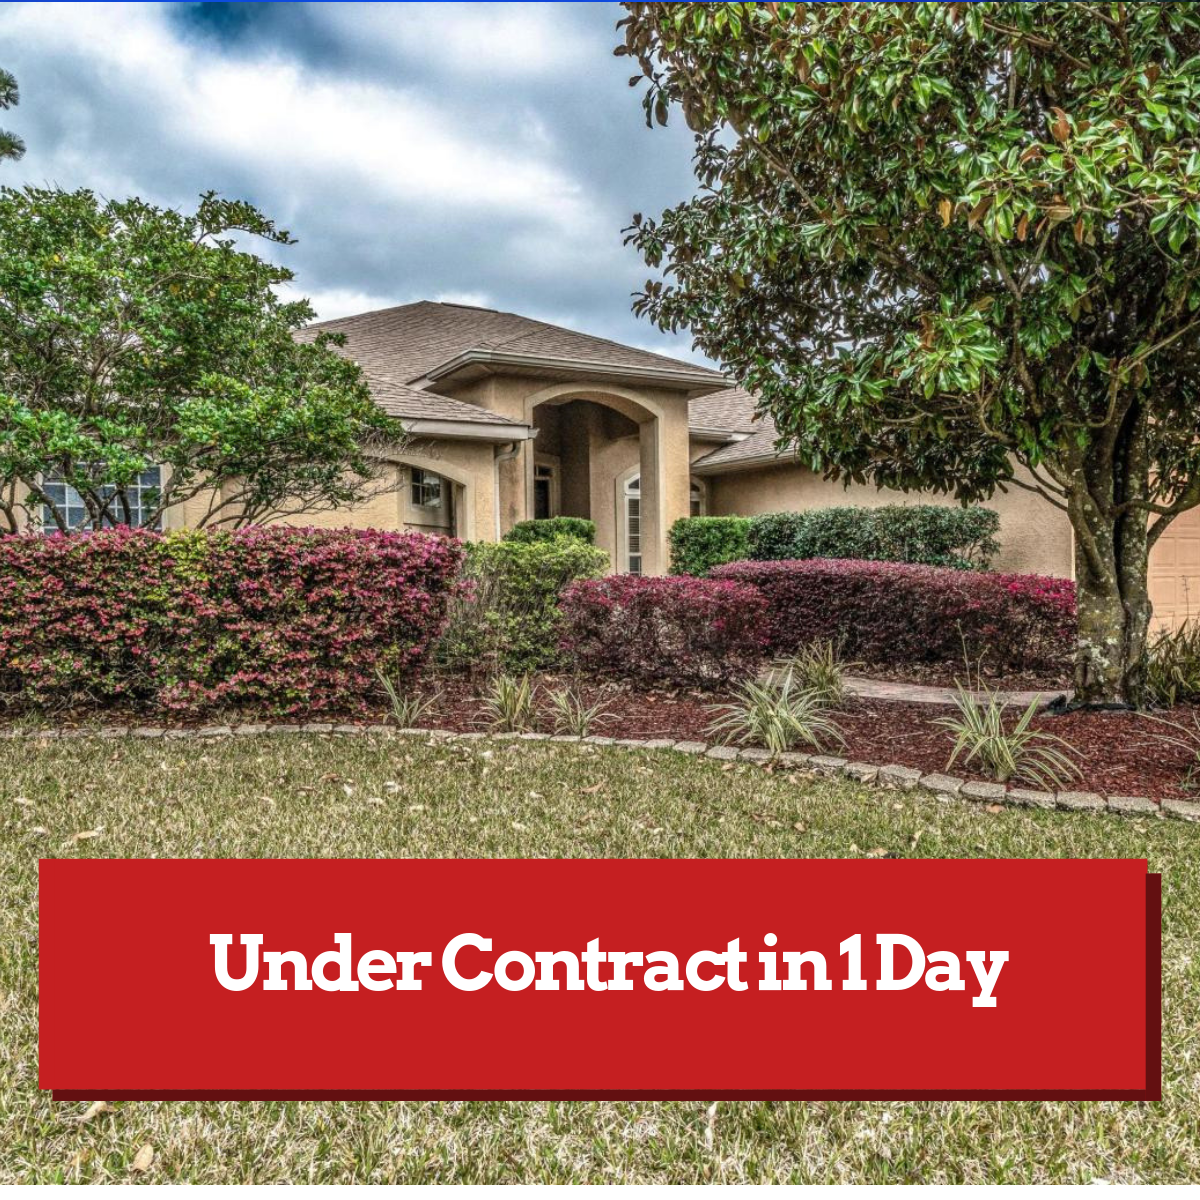 Niceville home under contract in 1 day